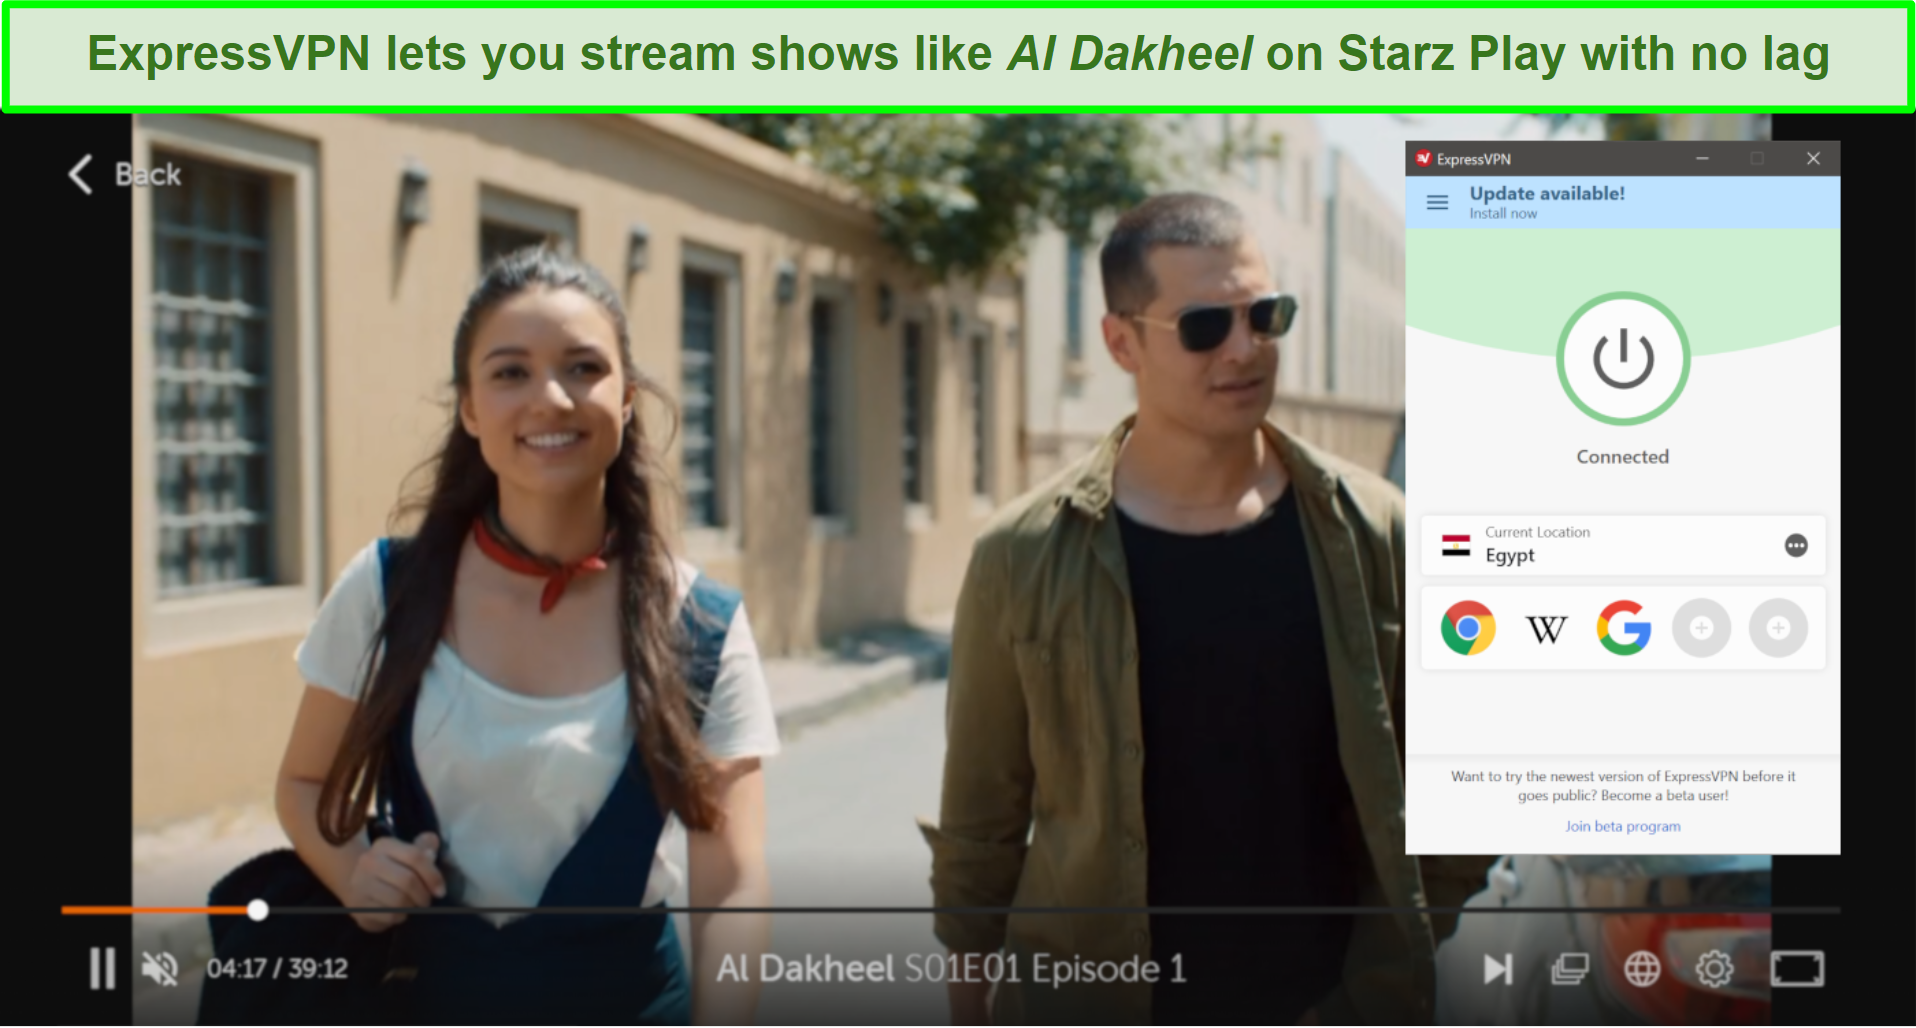 Screenshot of Al Dakheel on Starz Play playing with Expressvpn connected